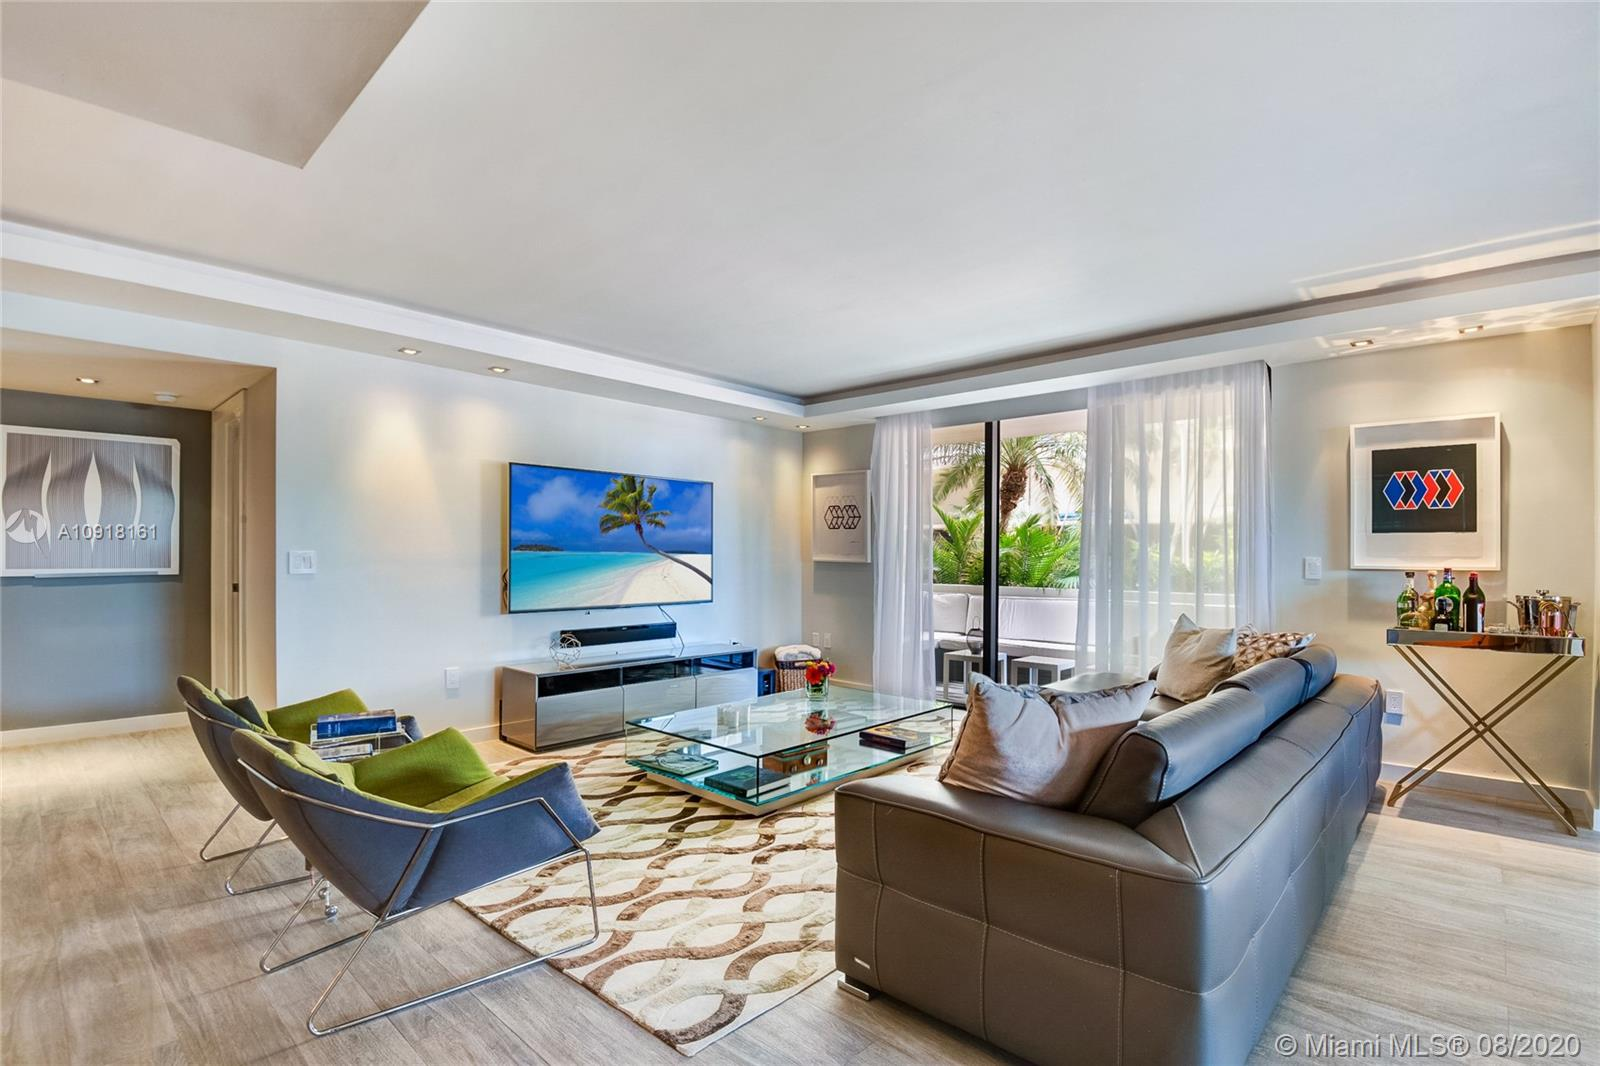 """Beautiful corner unit at the prestigious """"direct ocean front"""" Balmoral Condominium in Bal Harbour. This modern and all renovated unit features a wraparound balcony with direct access to pool area, 3 Bedrooms, 3 full Baths. Stunning Kitchen with top notch appliances. Open space concept to Dinning and Living areas. very luminous and spacious unit. Hurricane windows. 5 stars amenities: Large pool, tennis courts, gym, library, beach and pool services, restaurant and cafe, party salon, bar, hair salon, taylor, valet parking, receiving departament, concierge, 24 hs security and more. Walking distance to the Bal Harbour Shops, restaurants, publix, cvs, starbucks, banks, post office etc."""